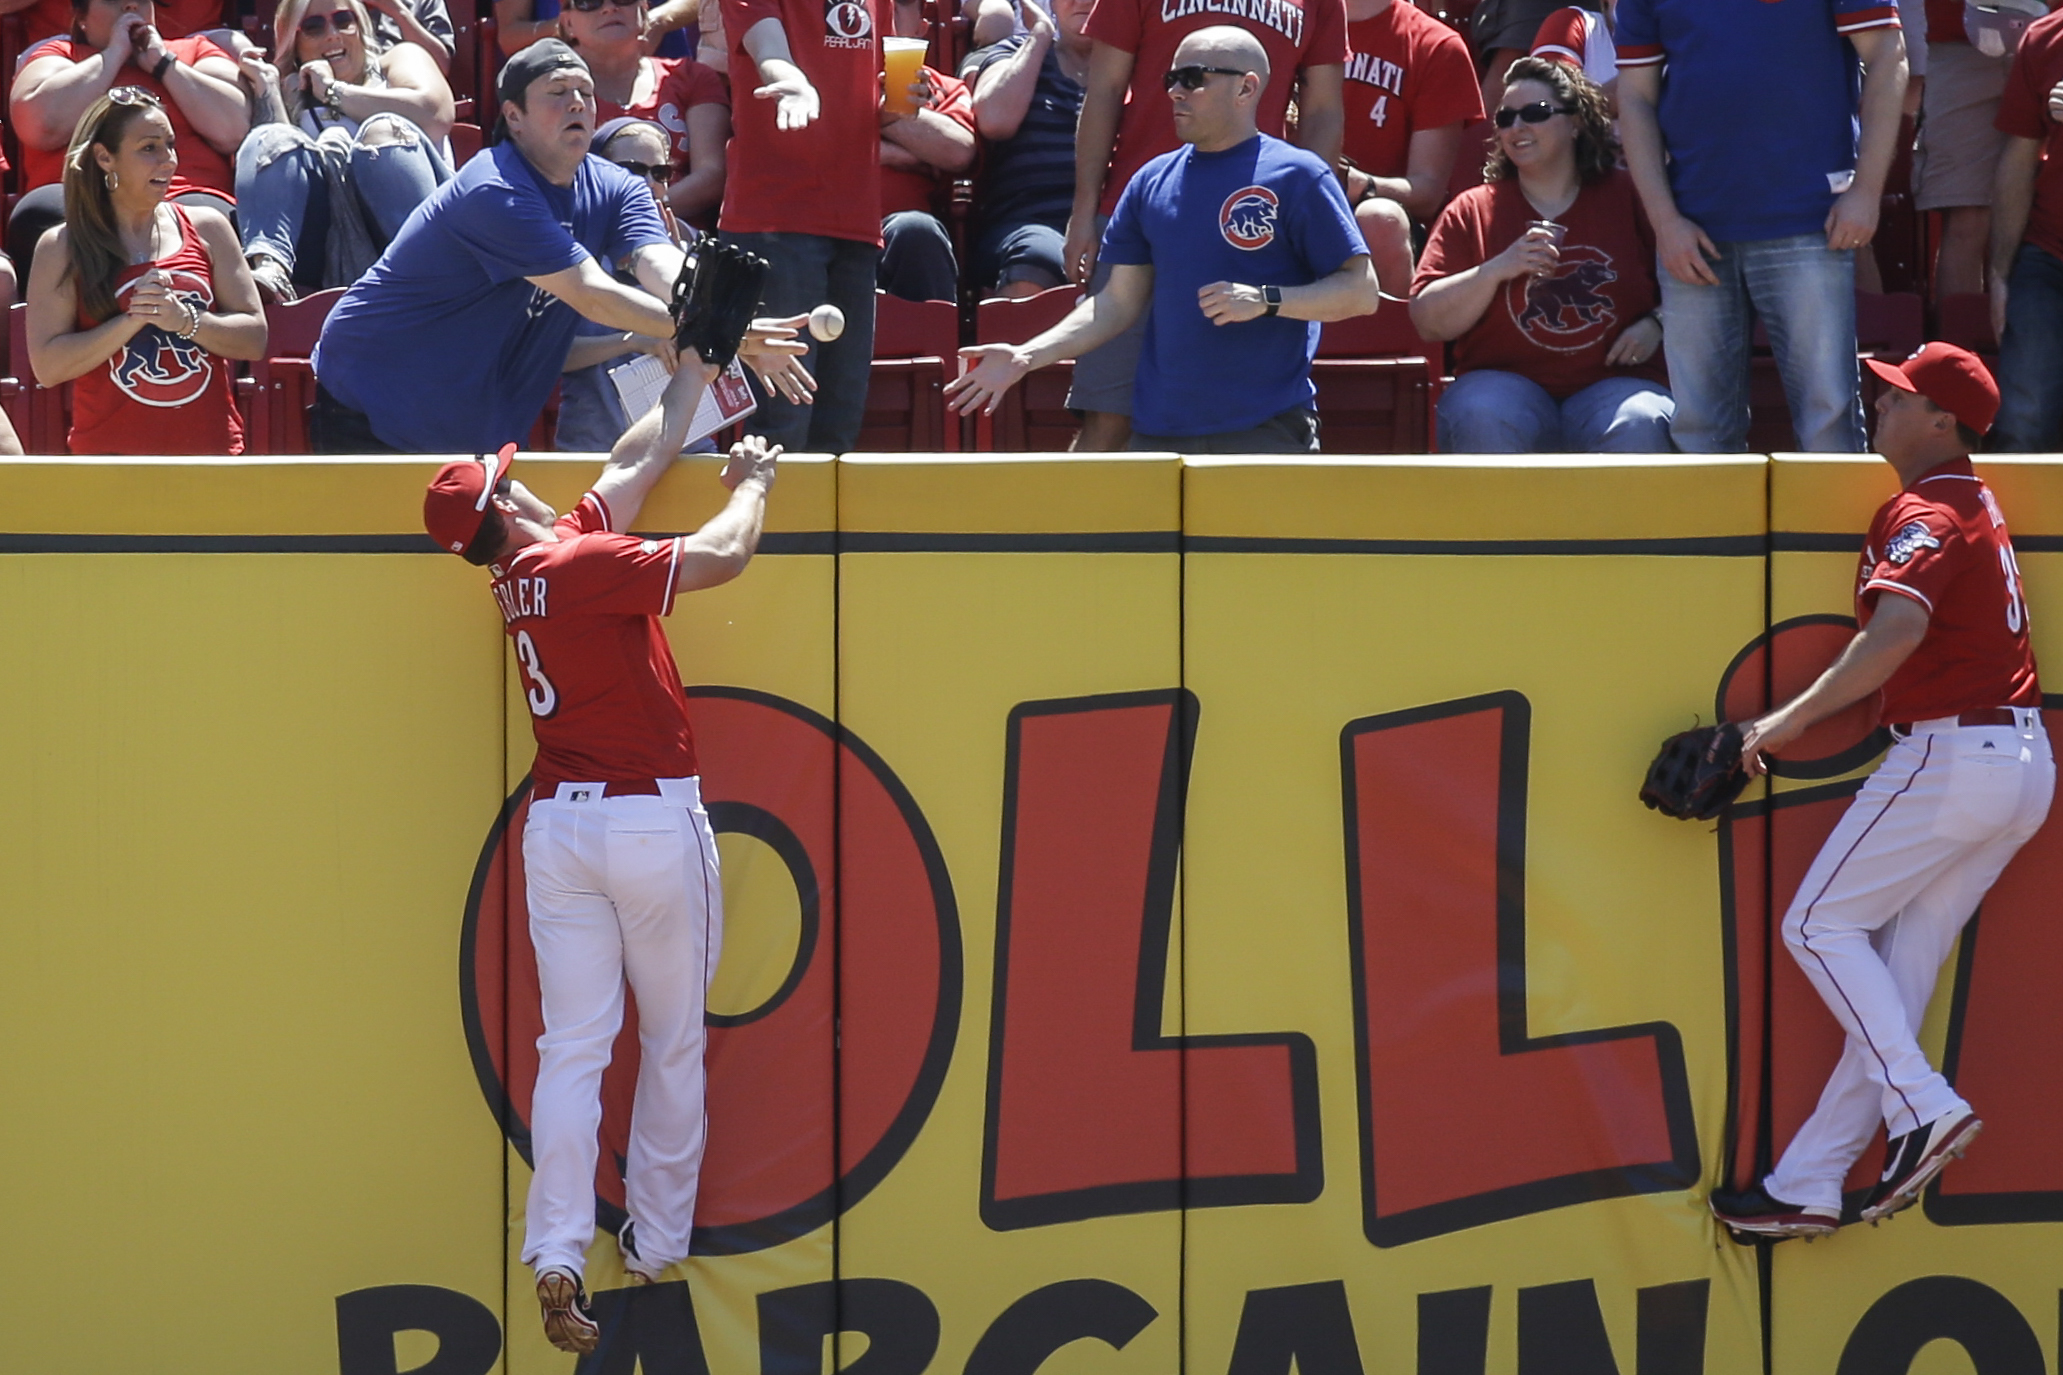 Cincinnati Reds center fielder Scott Schebler,  left, reaches for but cannot catch a two-run home run by Chicago Cubs' Anthony Rizzo as right fielder Jay Bruce, right, looks on in the first inning of a baseball game, Sunday, April 24, 2016, in Cincinnati.